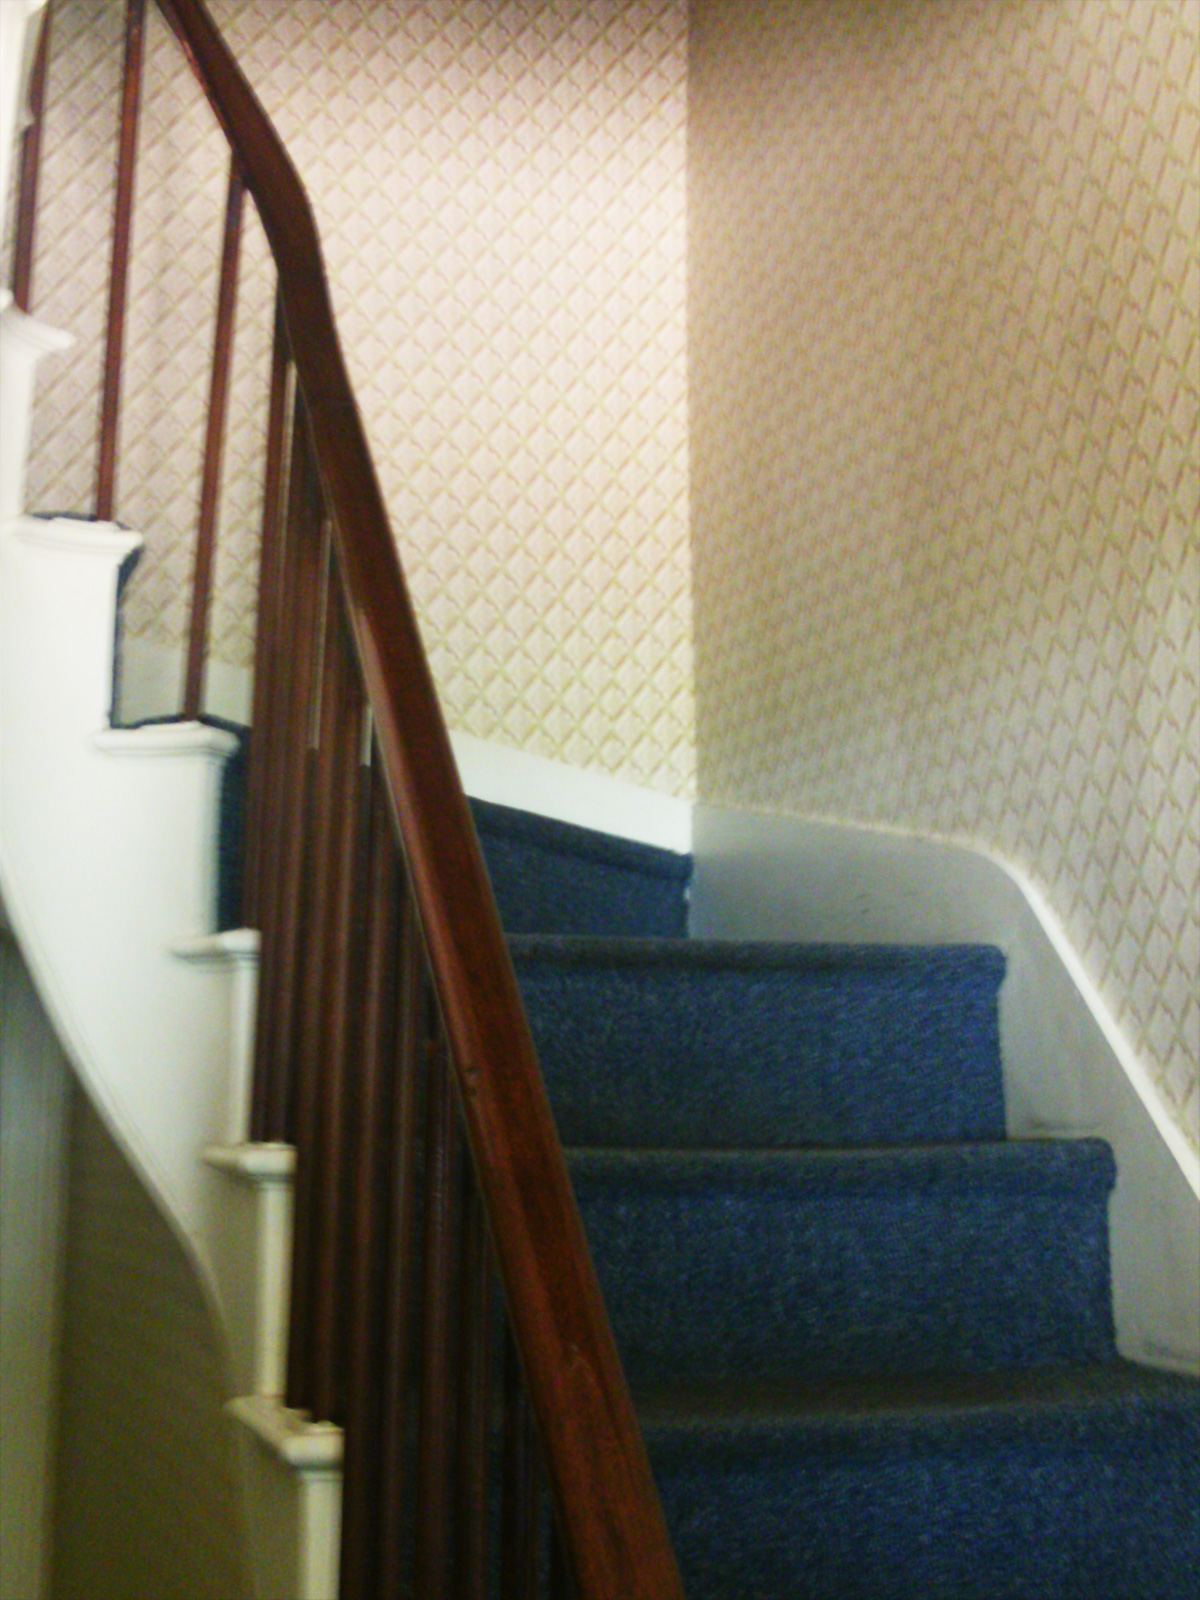 Staircase in the Lincoln home